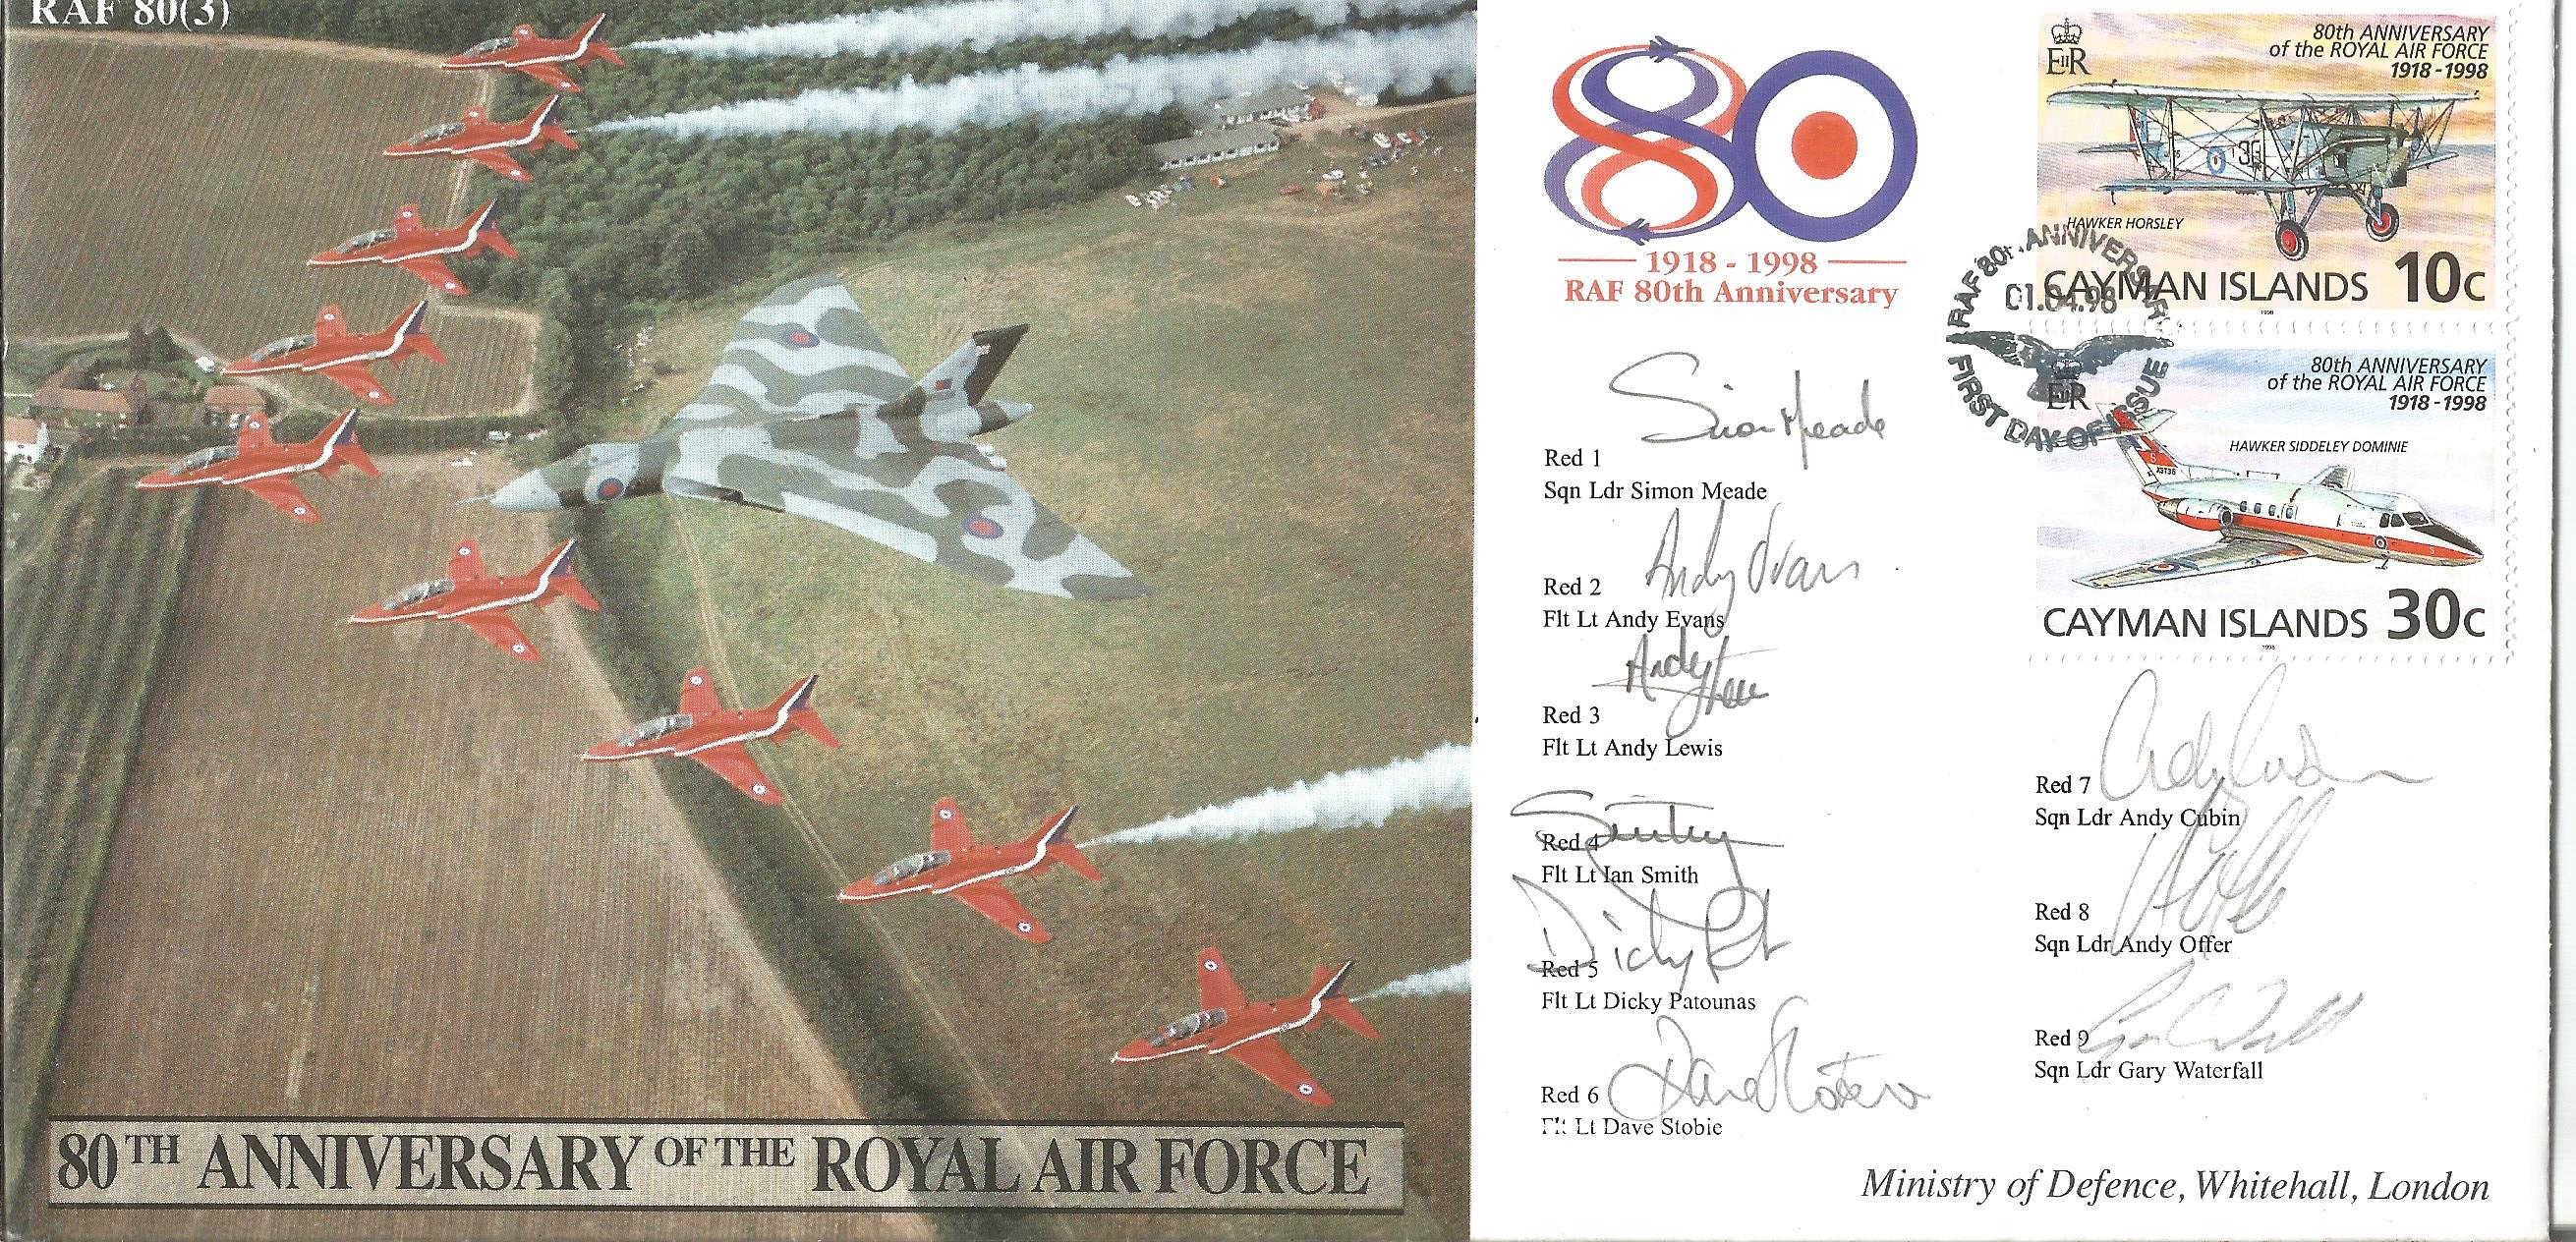 Rare Red Arrows team signed 80th ann RAF cover 1998. Good Condition. All autographs are genuine hand